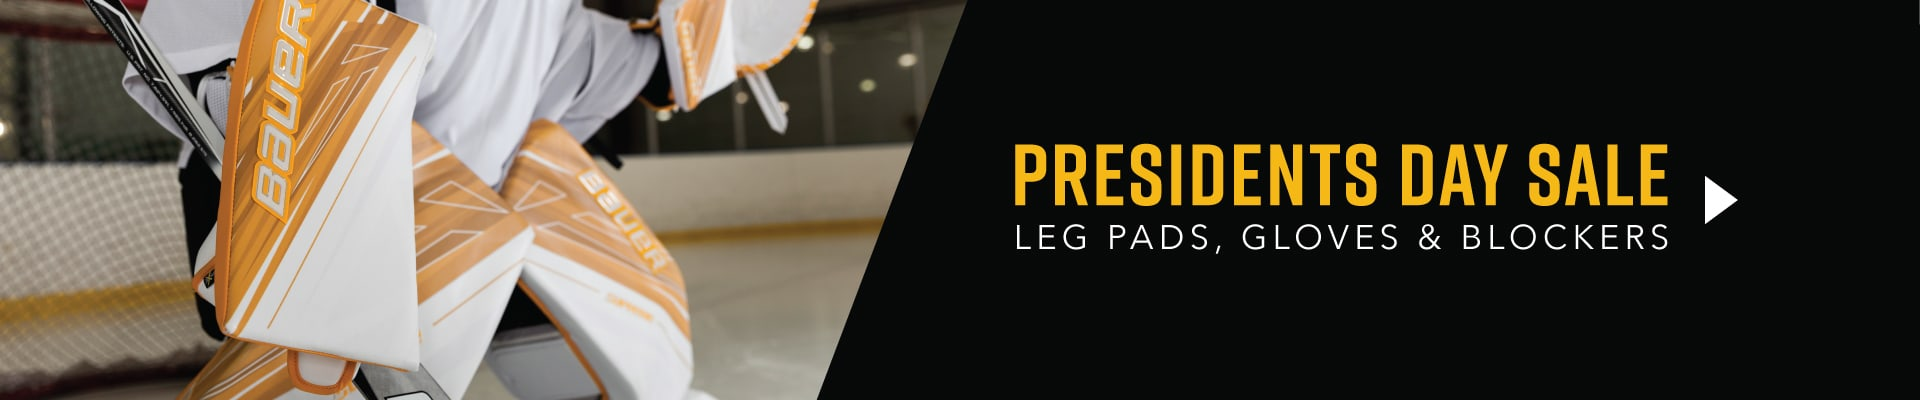 Presidents Day Sale - Leg Pads, Gloves, and  Blockers